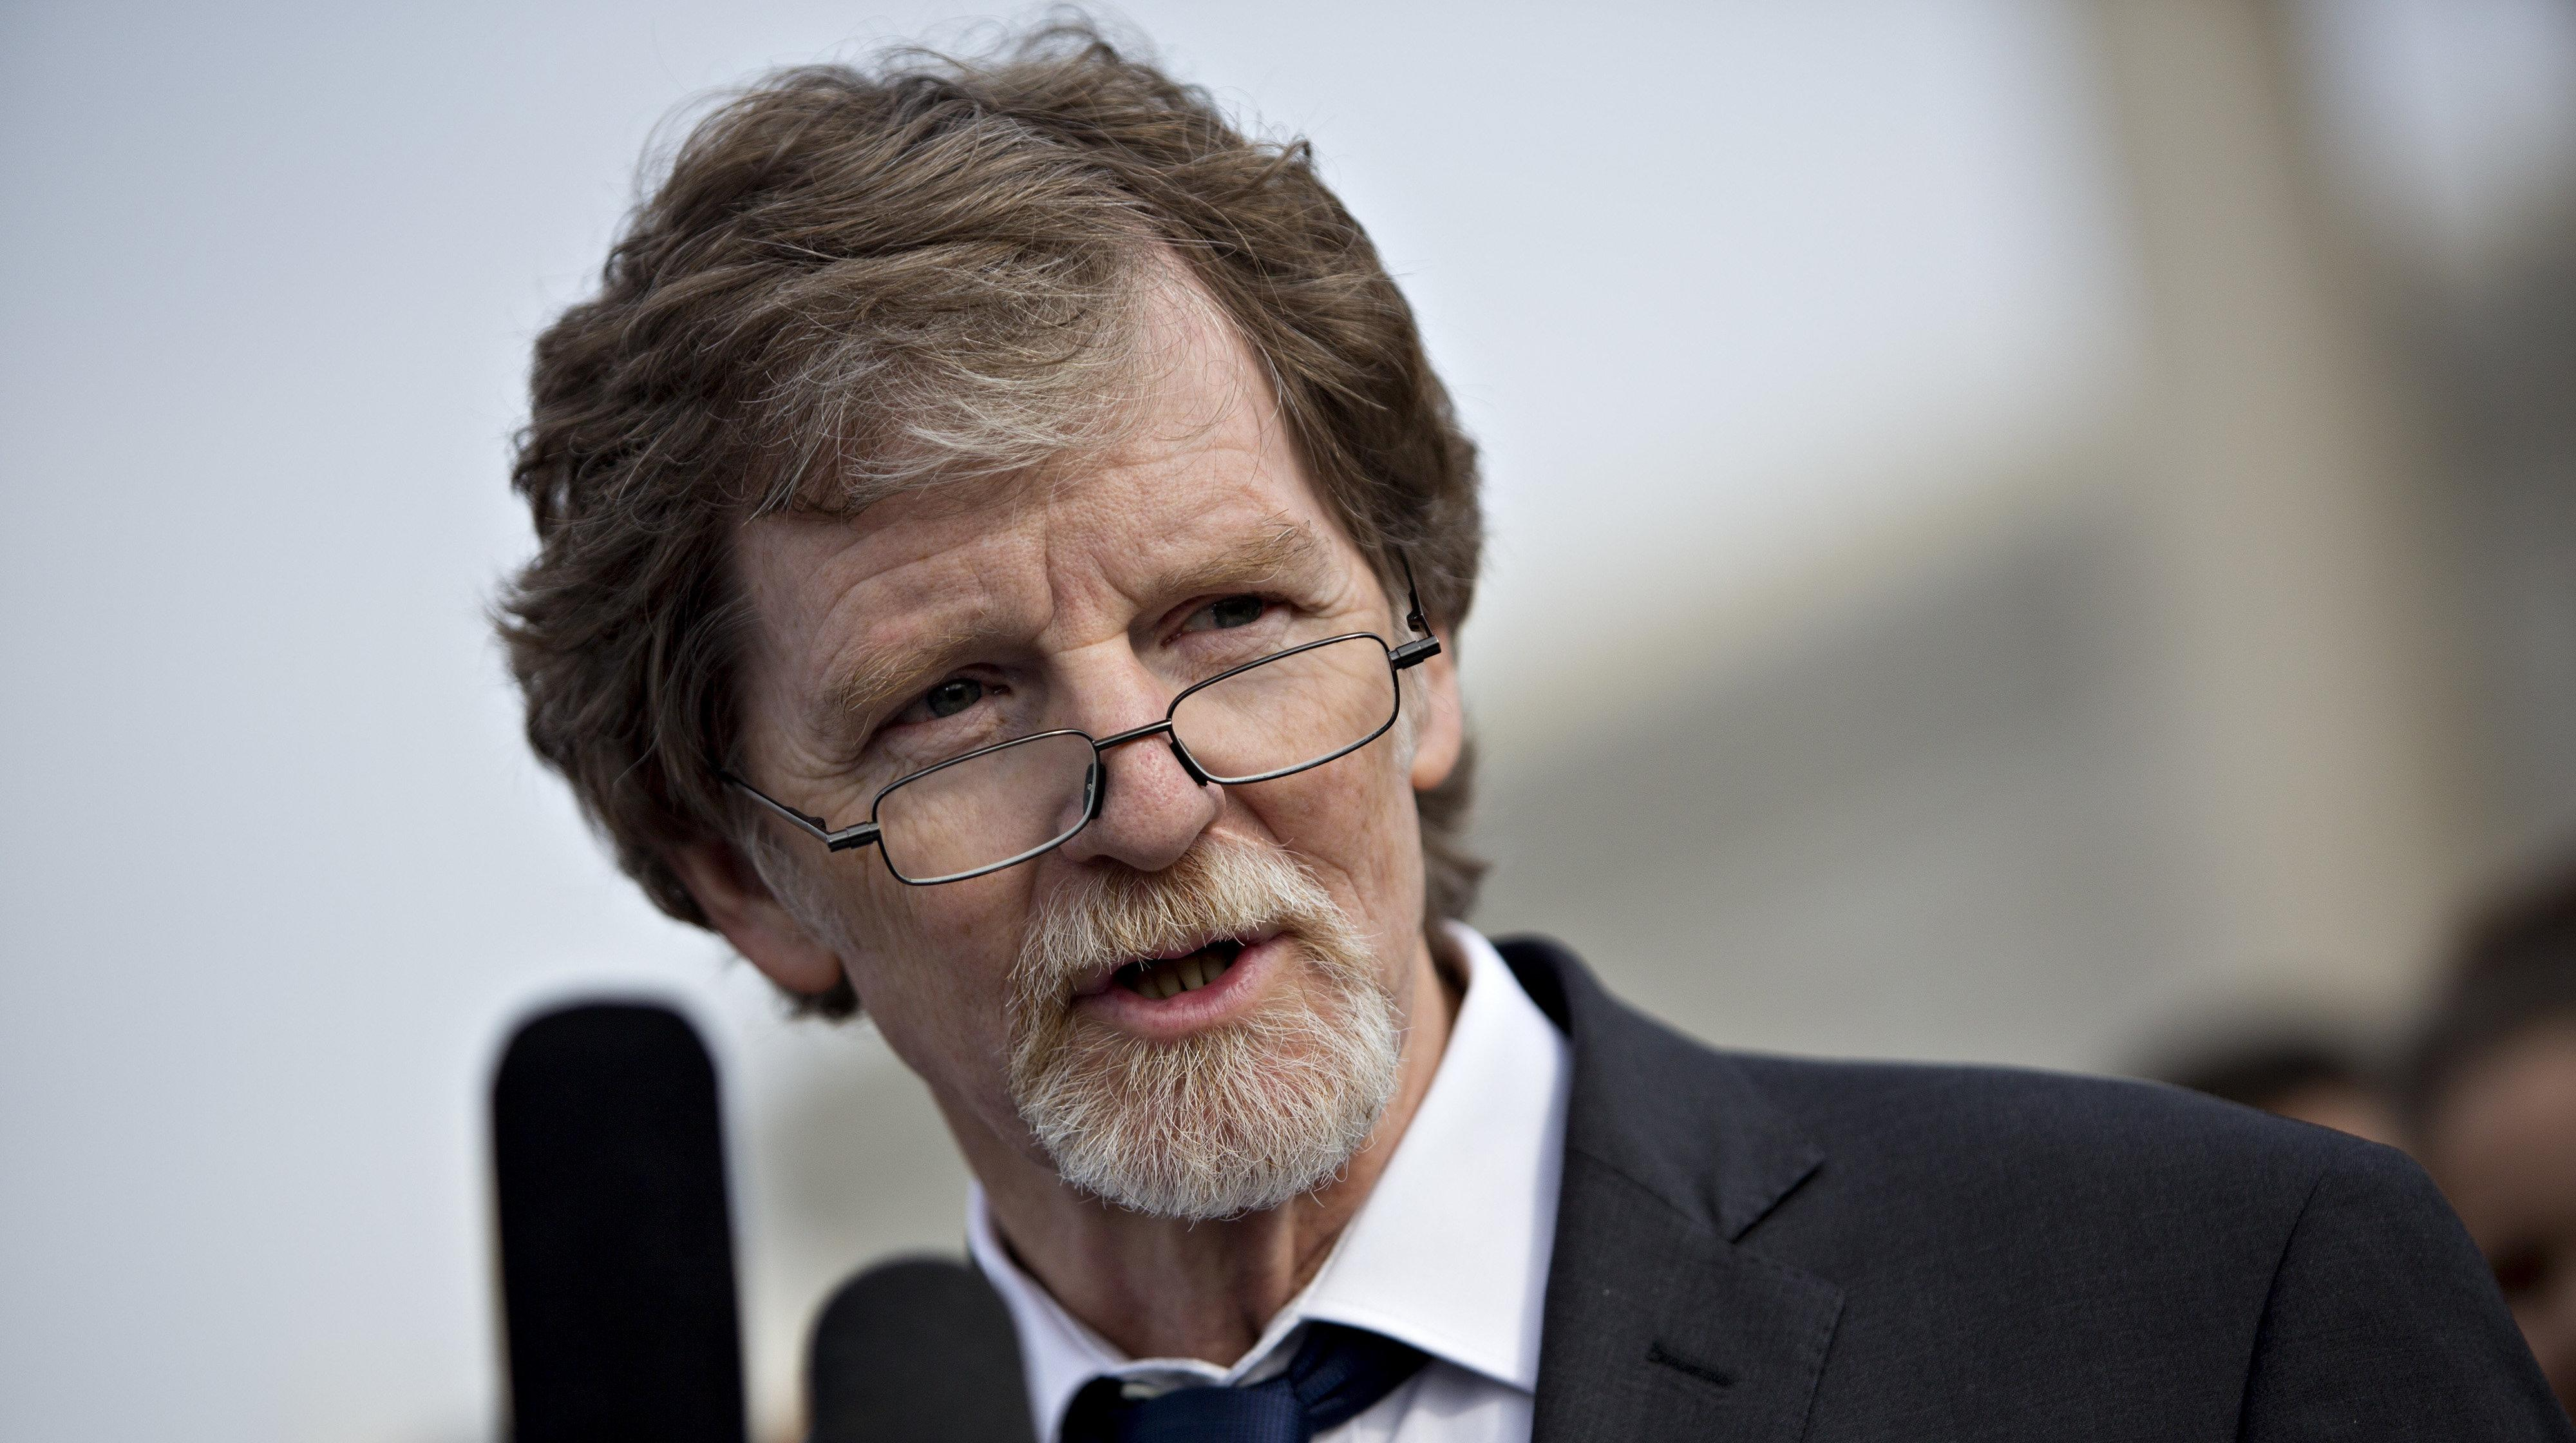 Masterpiece Cakeshop Owner Sues Colorado After Refusing To Bake Trans Woman's Cake